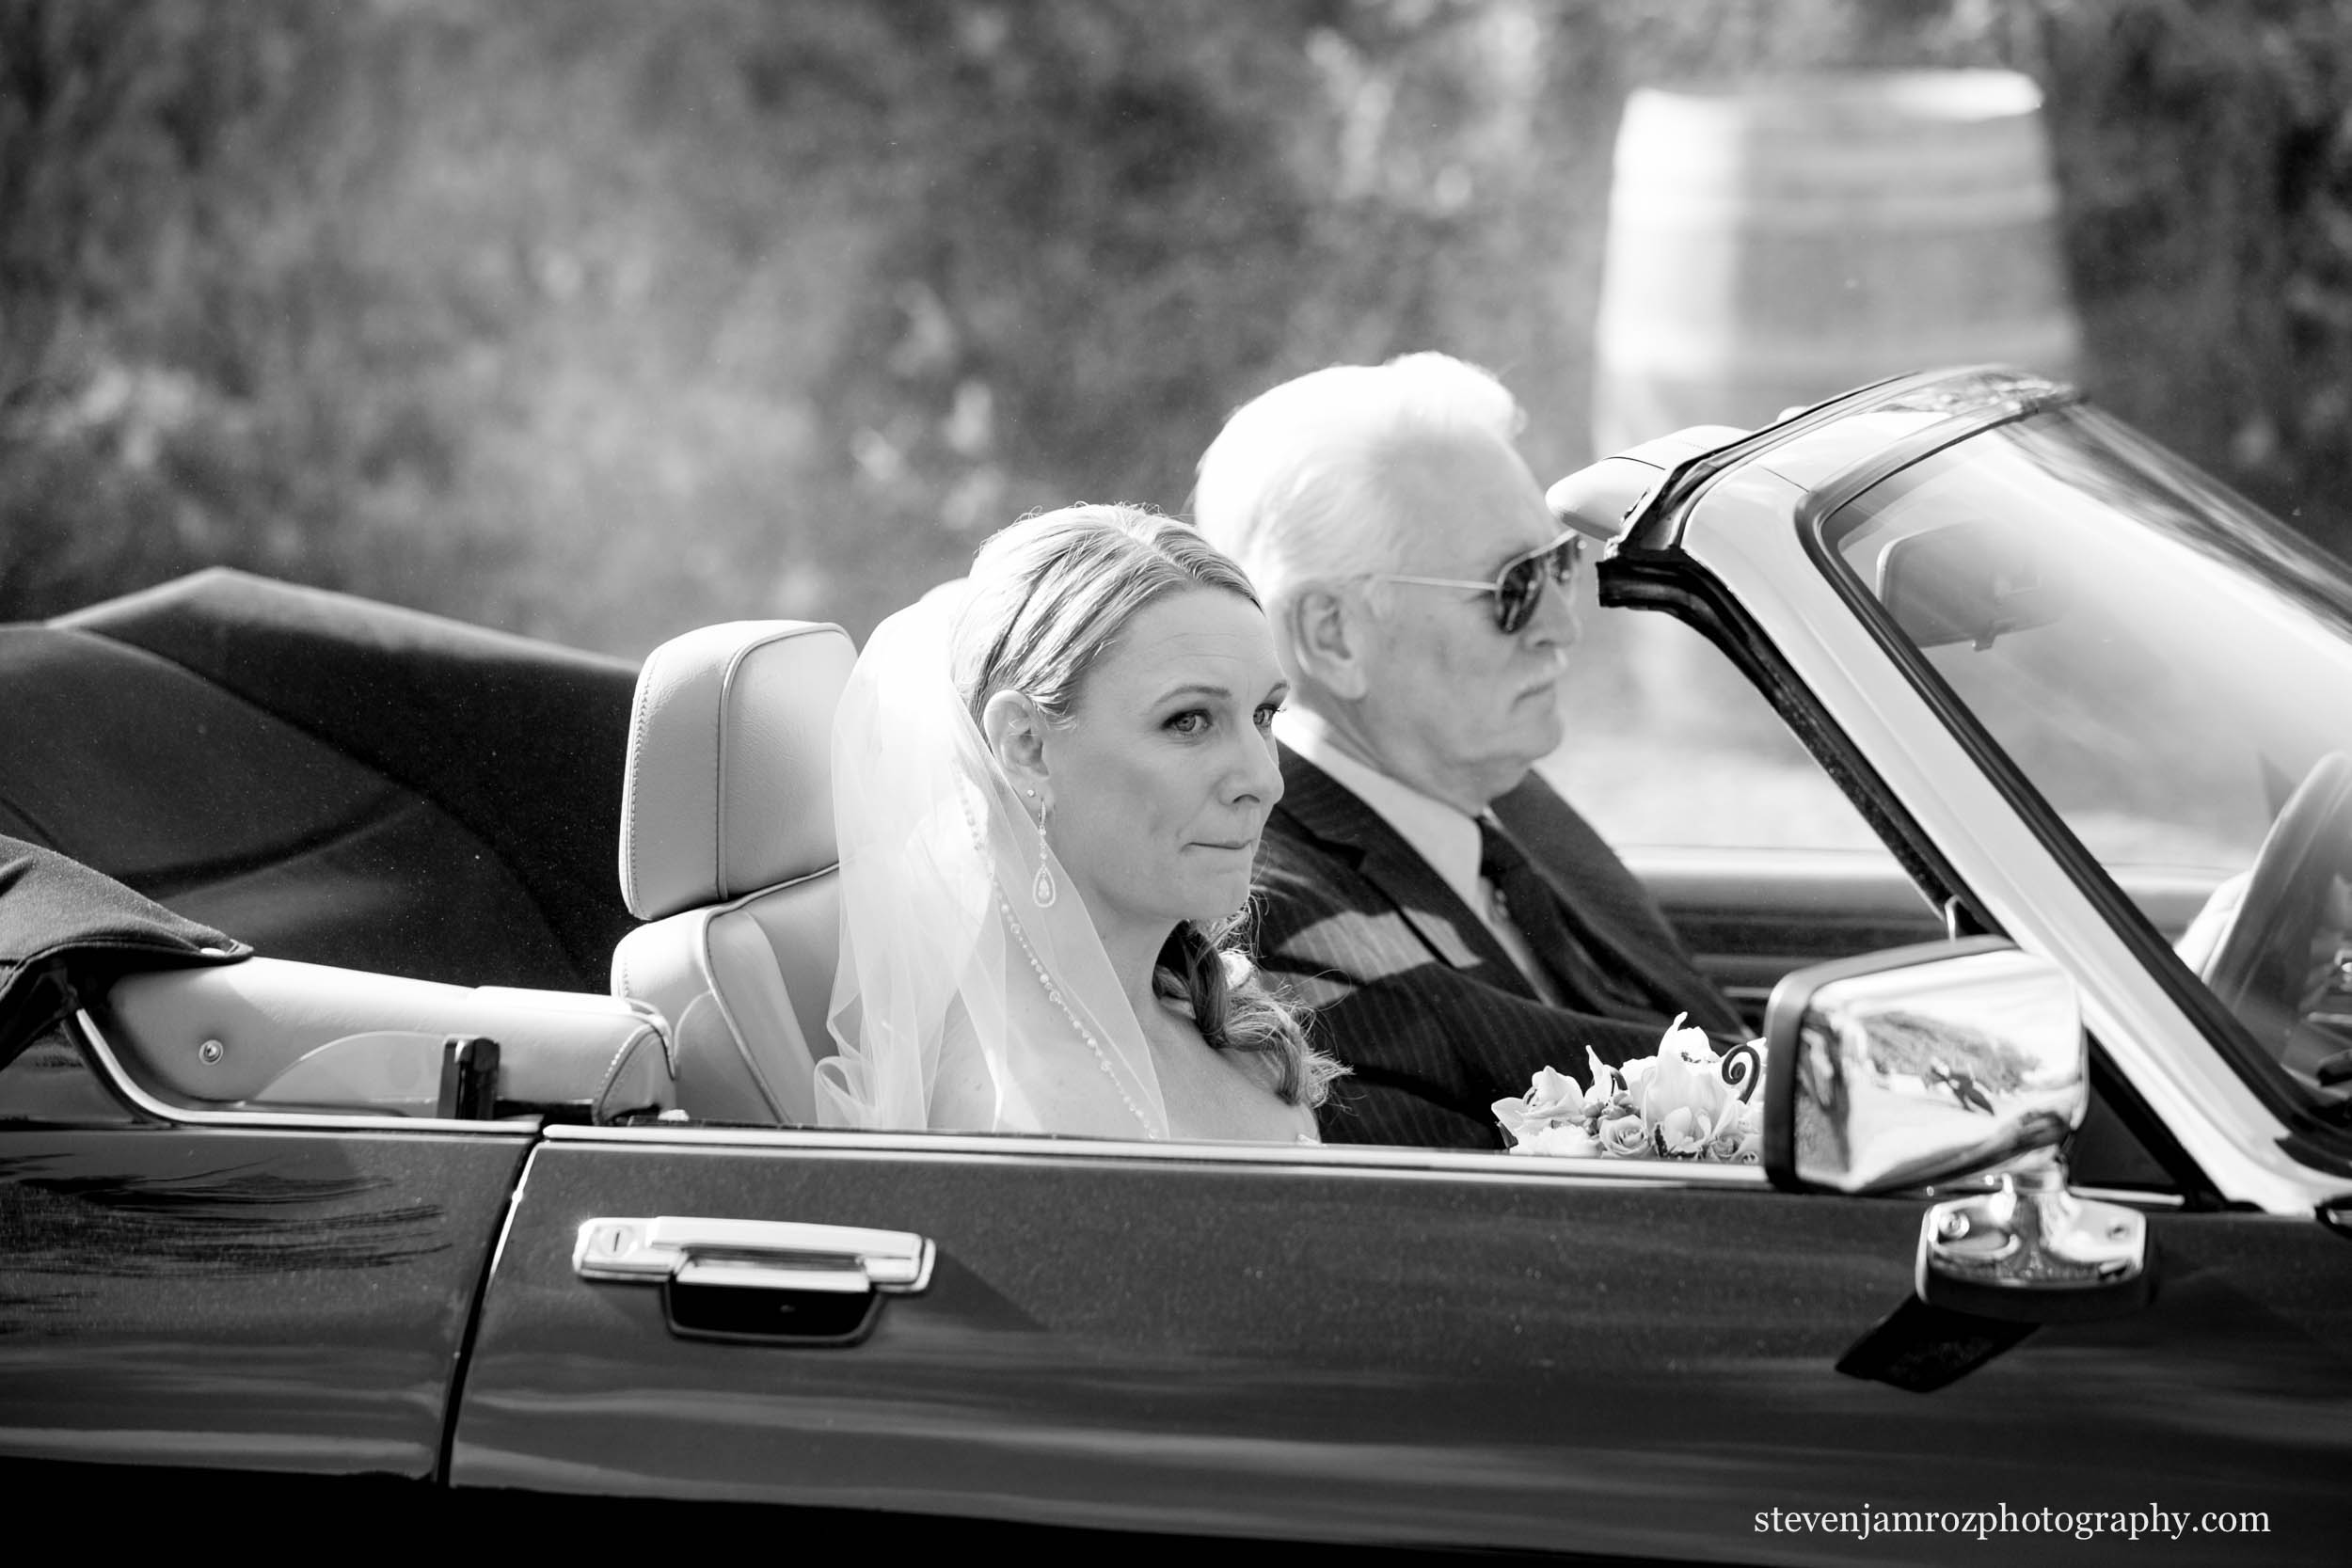 ceremony-time-wedding-car-raleigh-nc-steven-jamroz-photography-0356.jpg